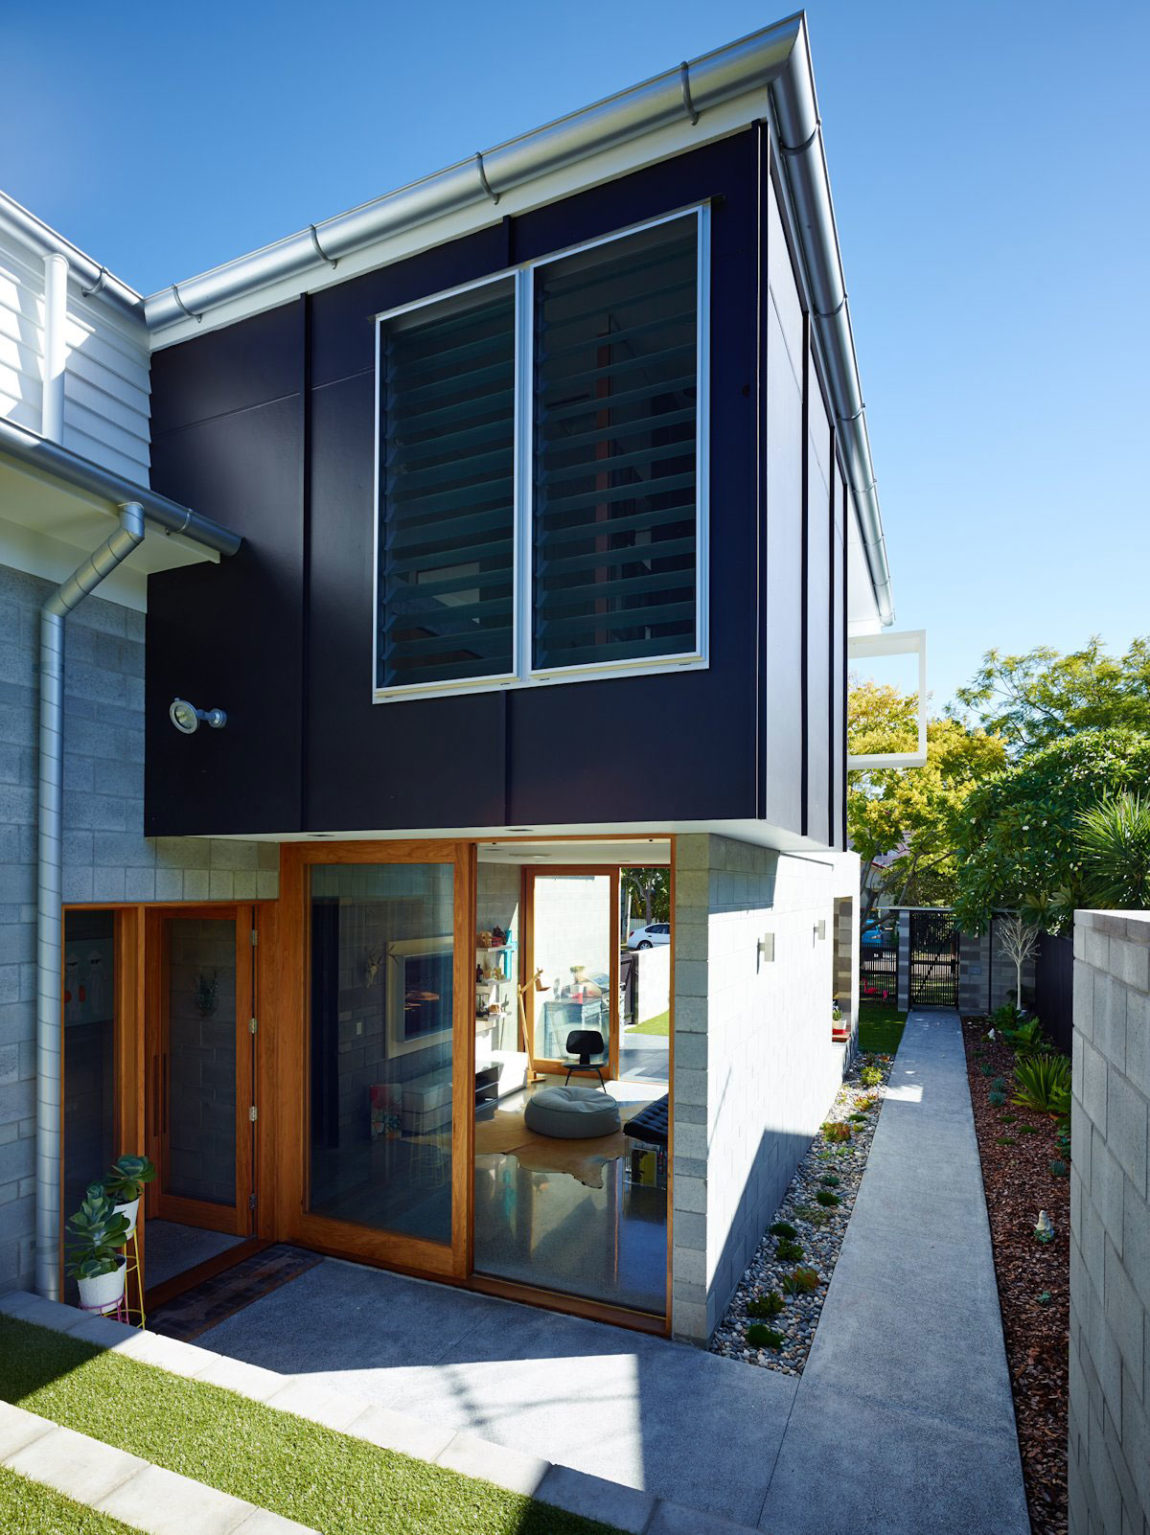 The Terraced House by Shaun Lockyer Architects (8)